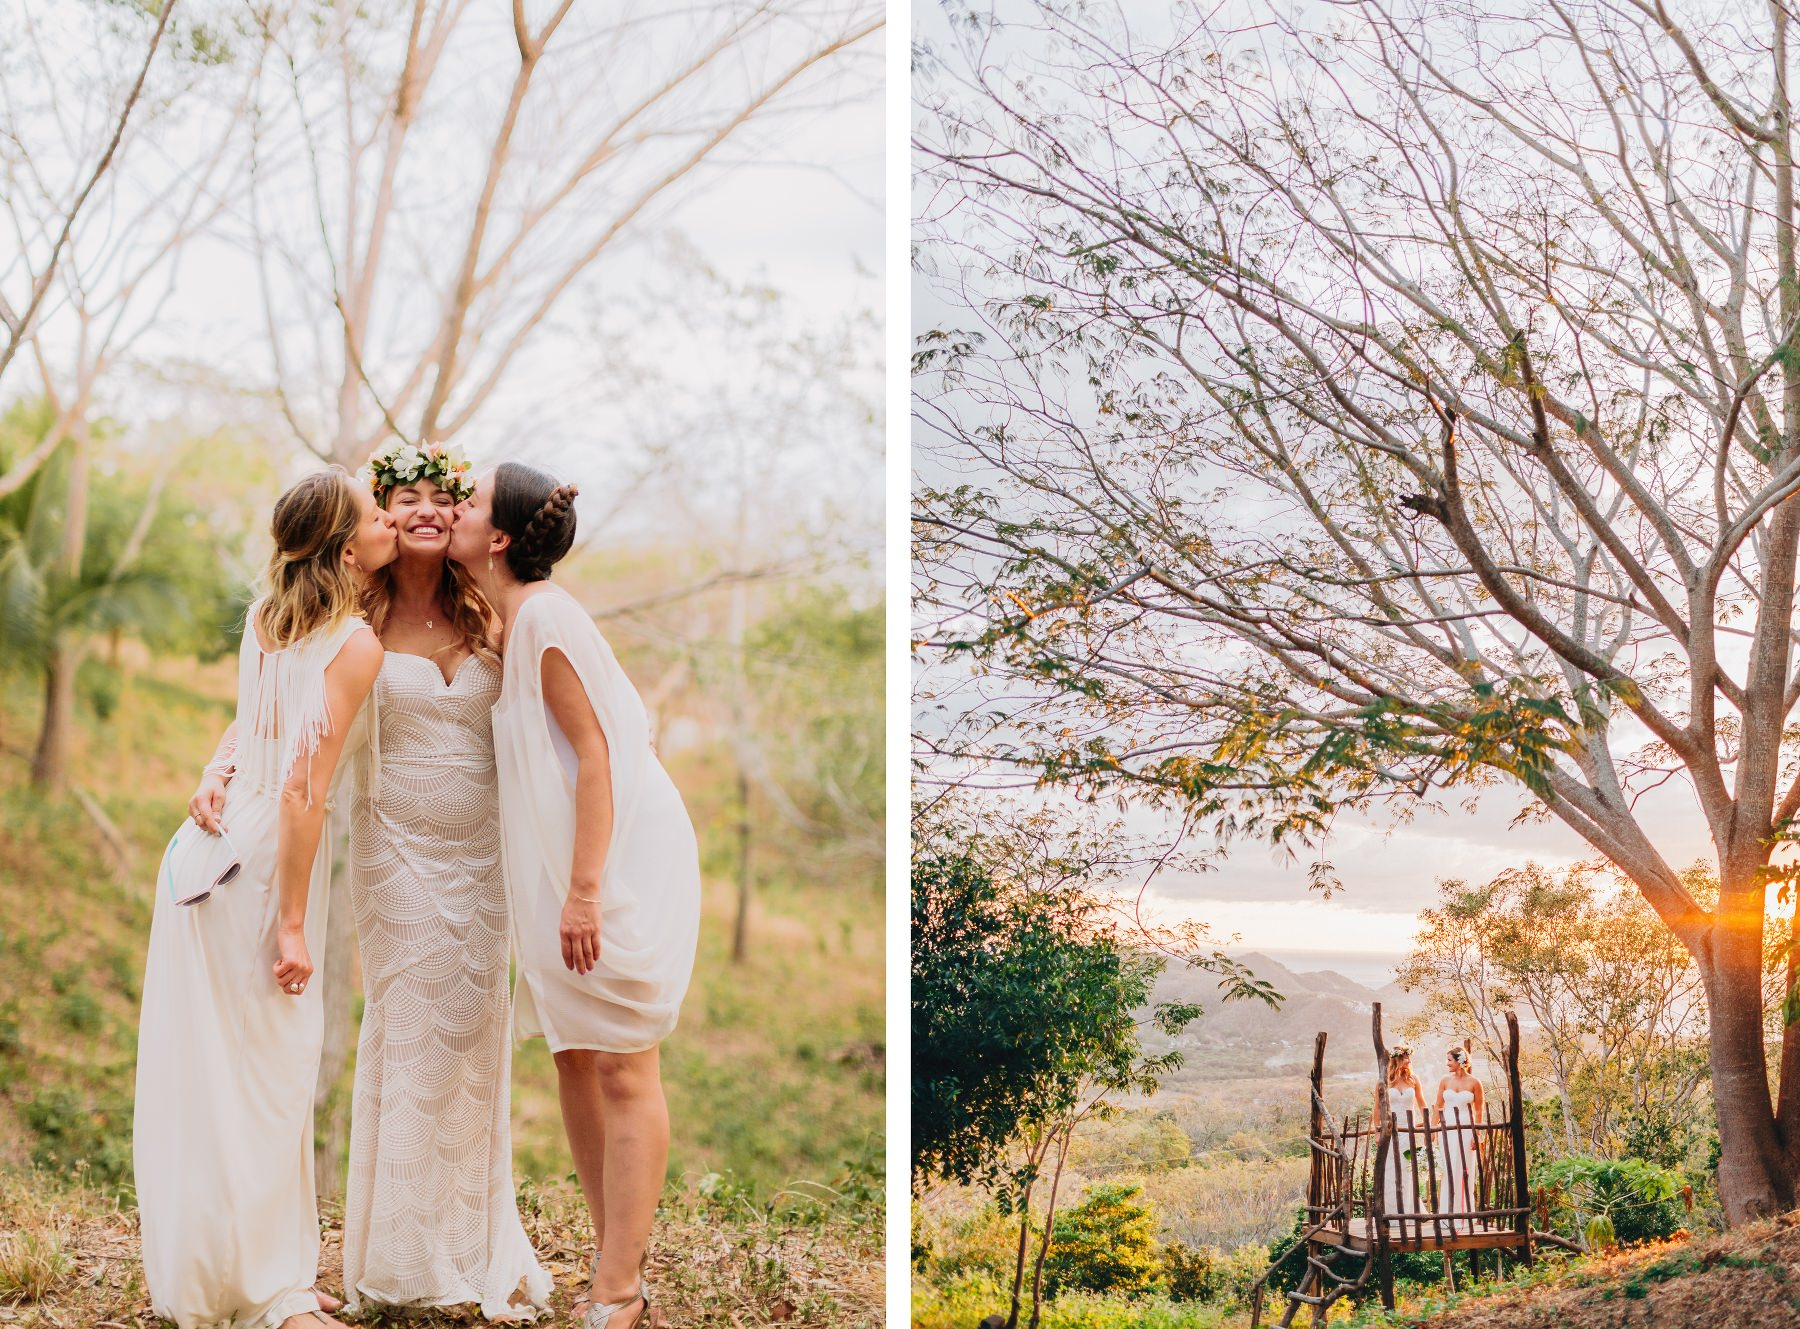 Family bride photos - boho style destination wedding photography Costa Rica